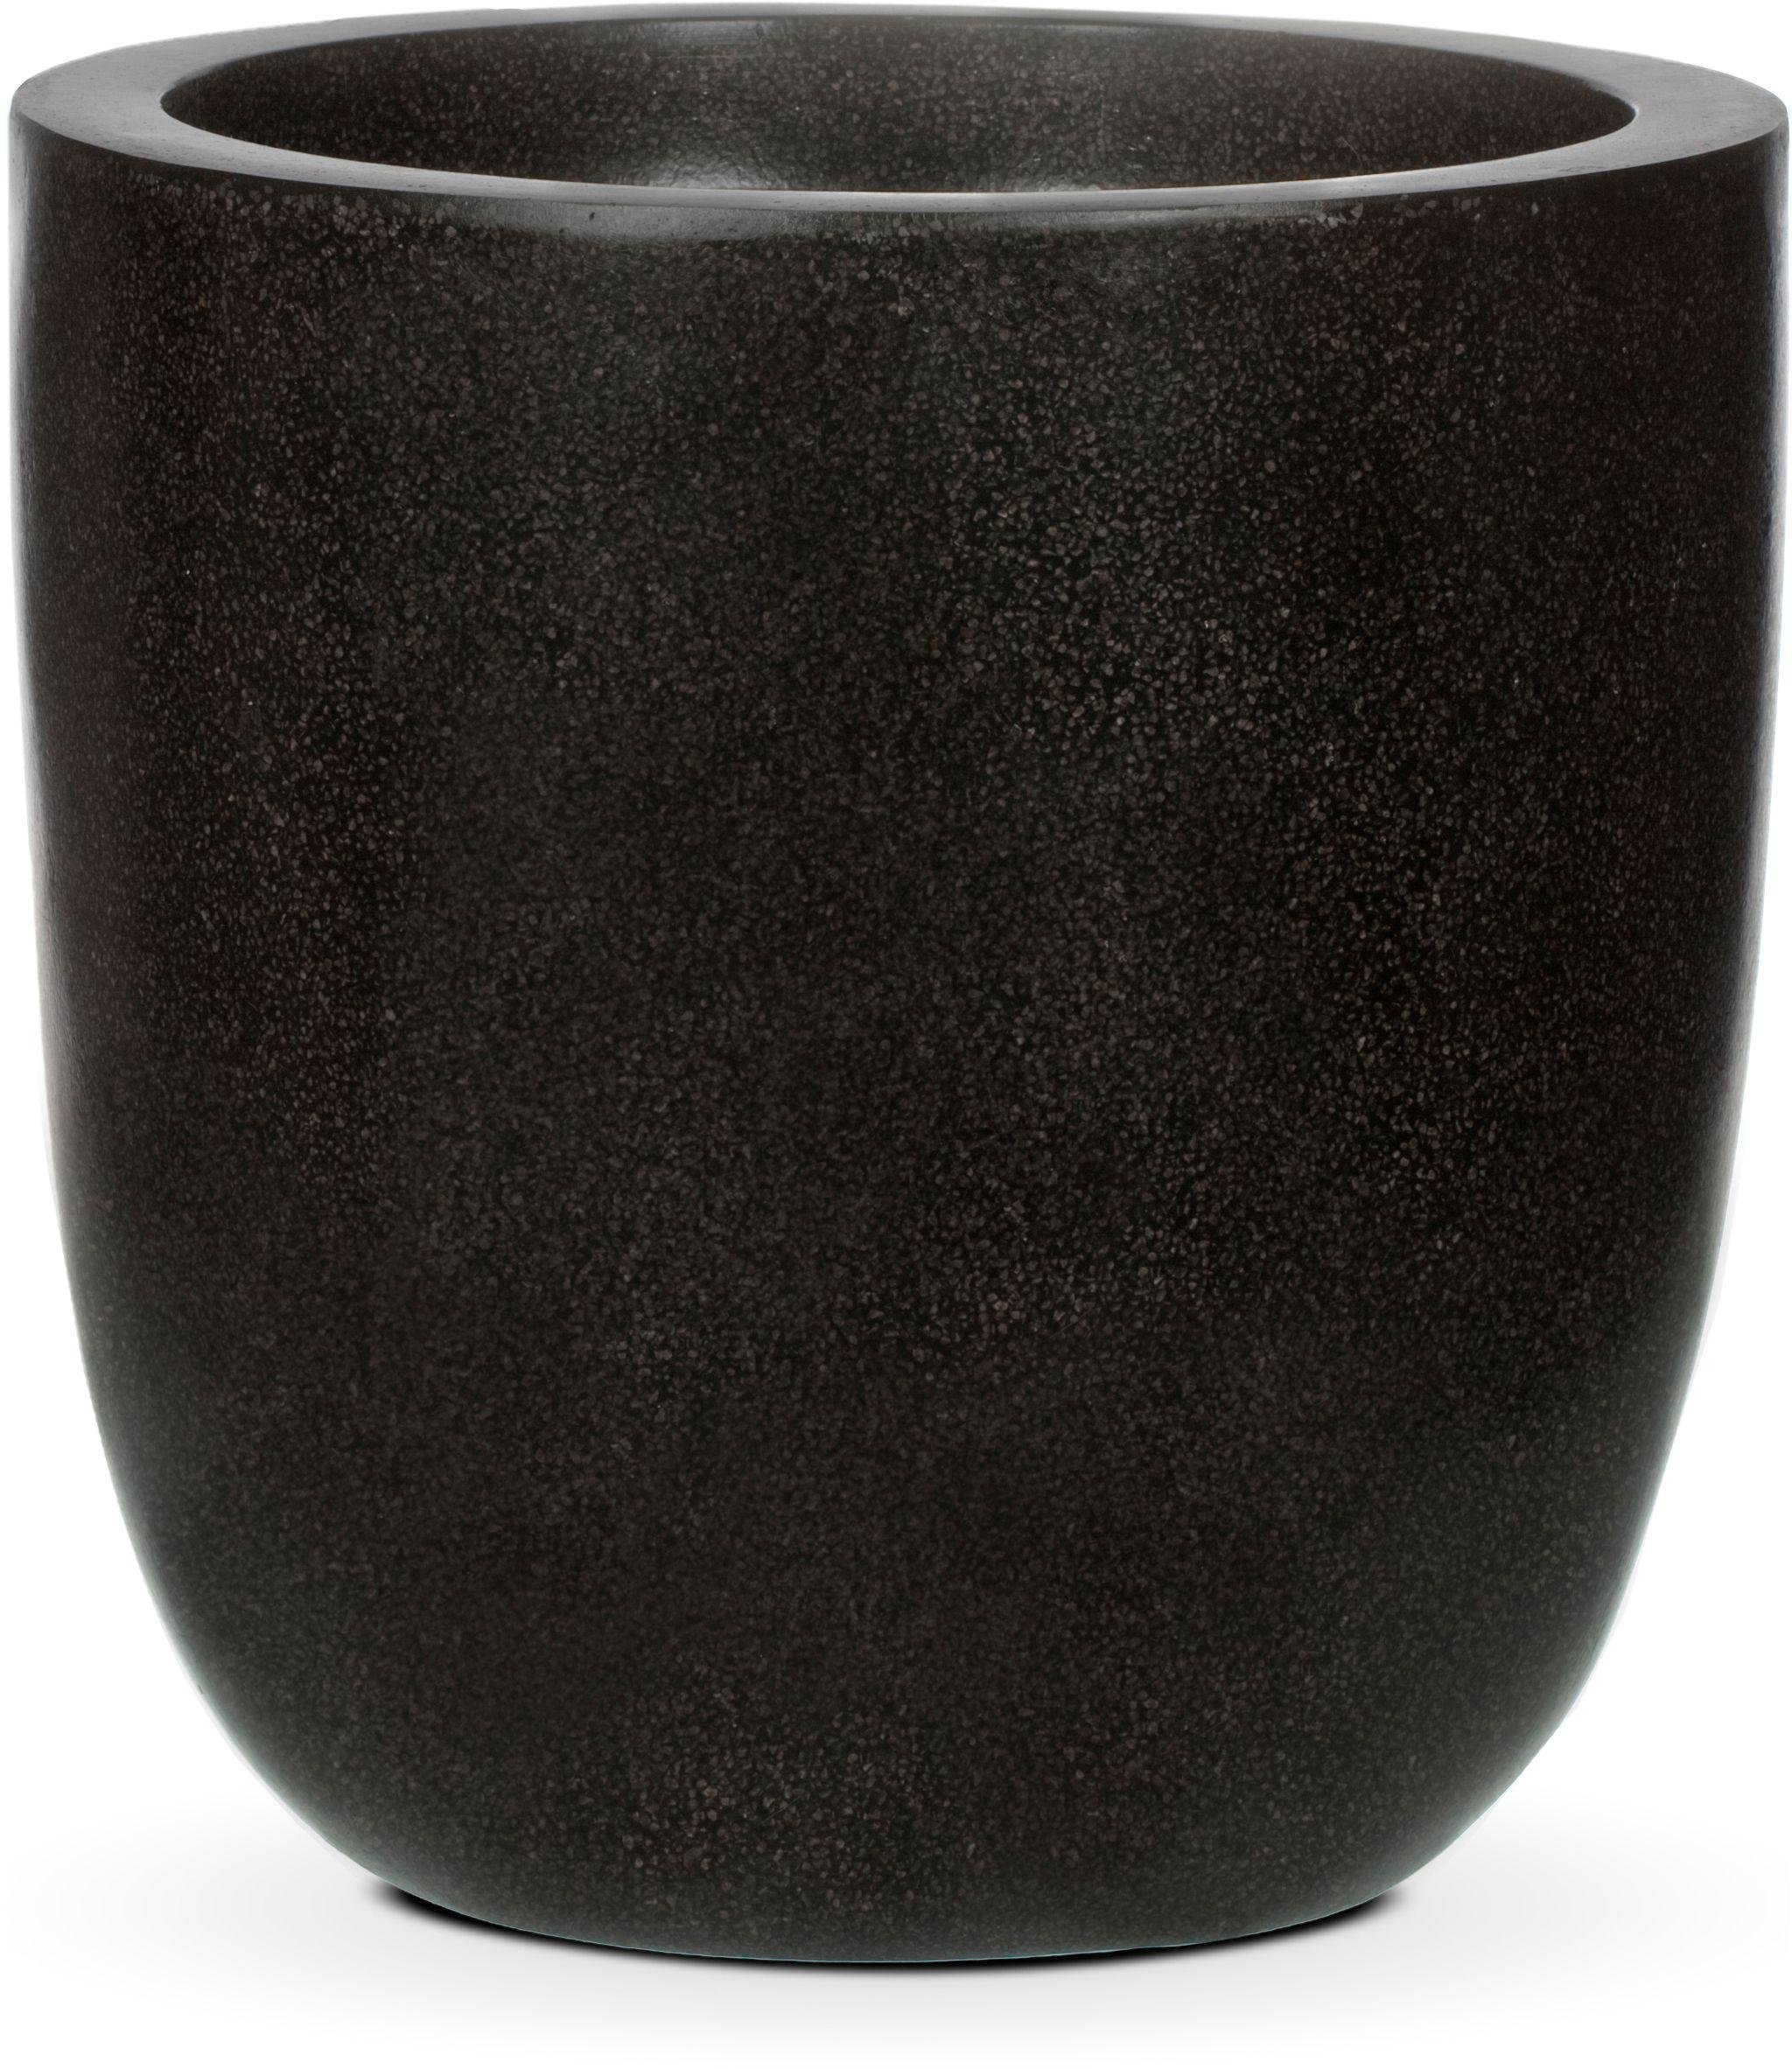 Image of Capi Lux Black Planter Egg - 43 x 41cm.